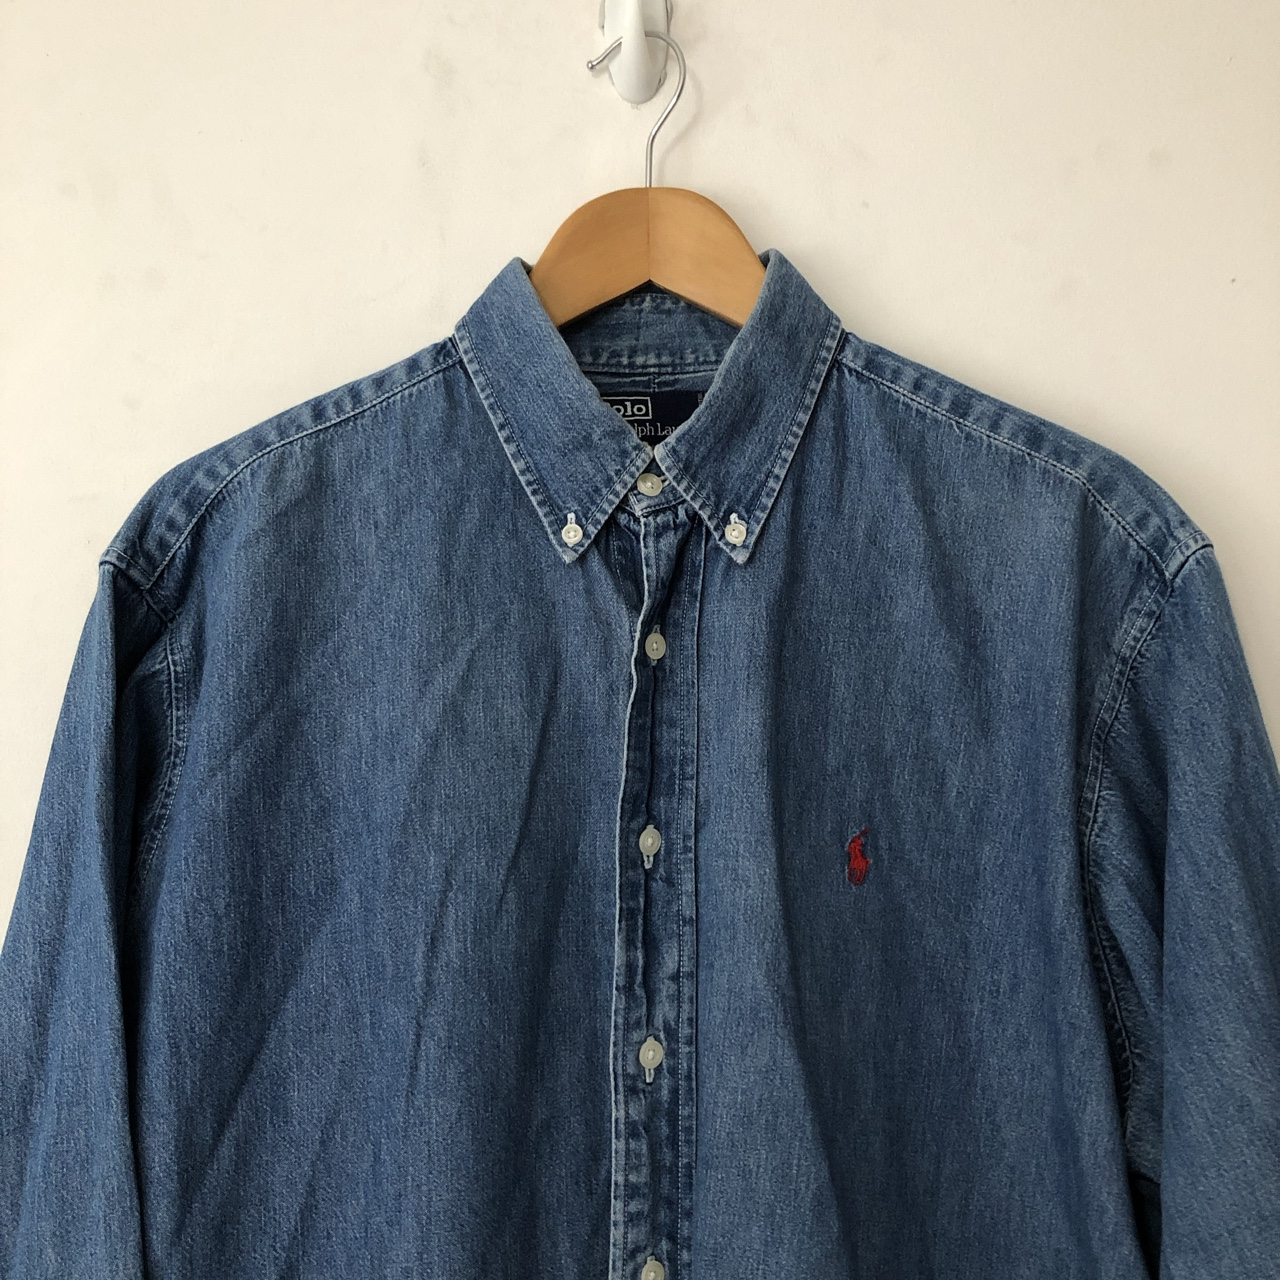 Vintage Ralph Lauren Denim Shirt In L But Would Fit by Depop